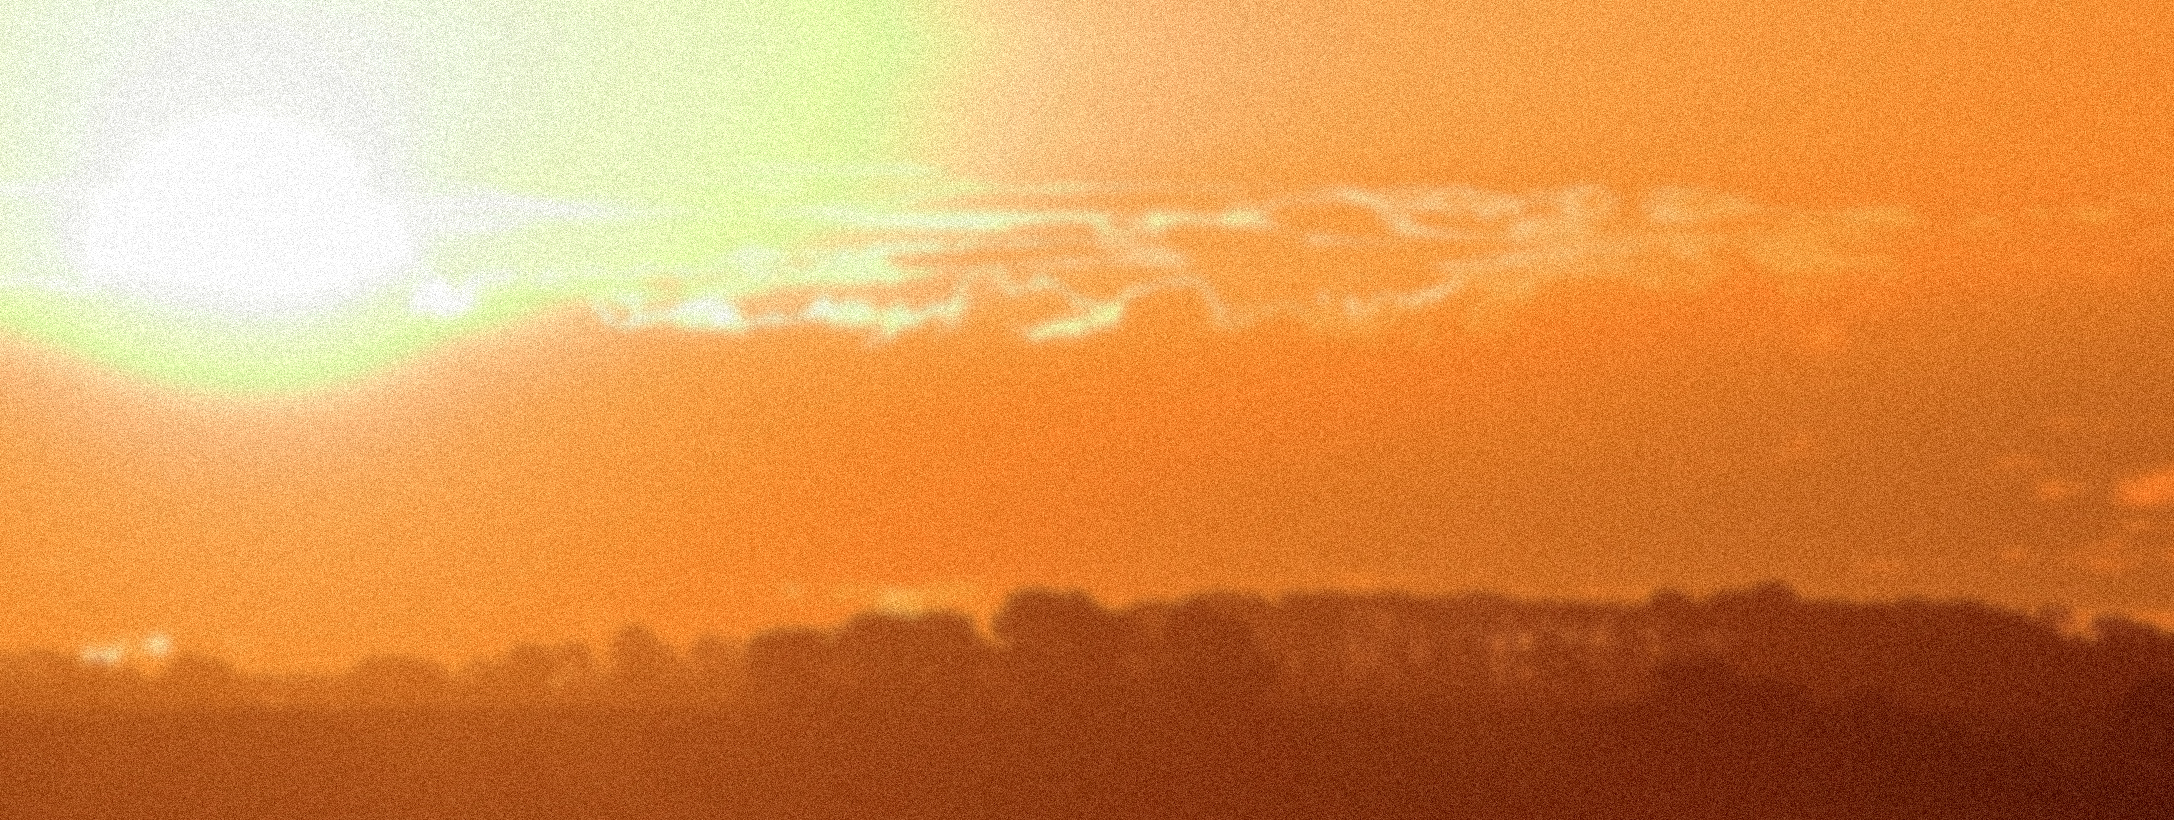 Photograph of a sunset